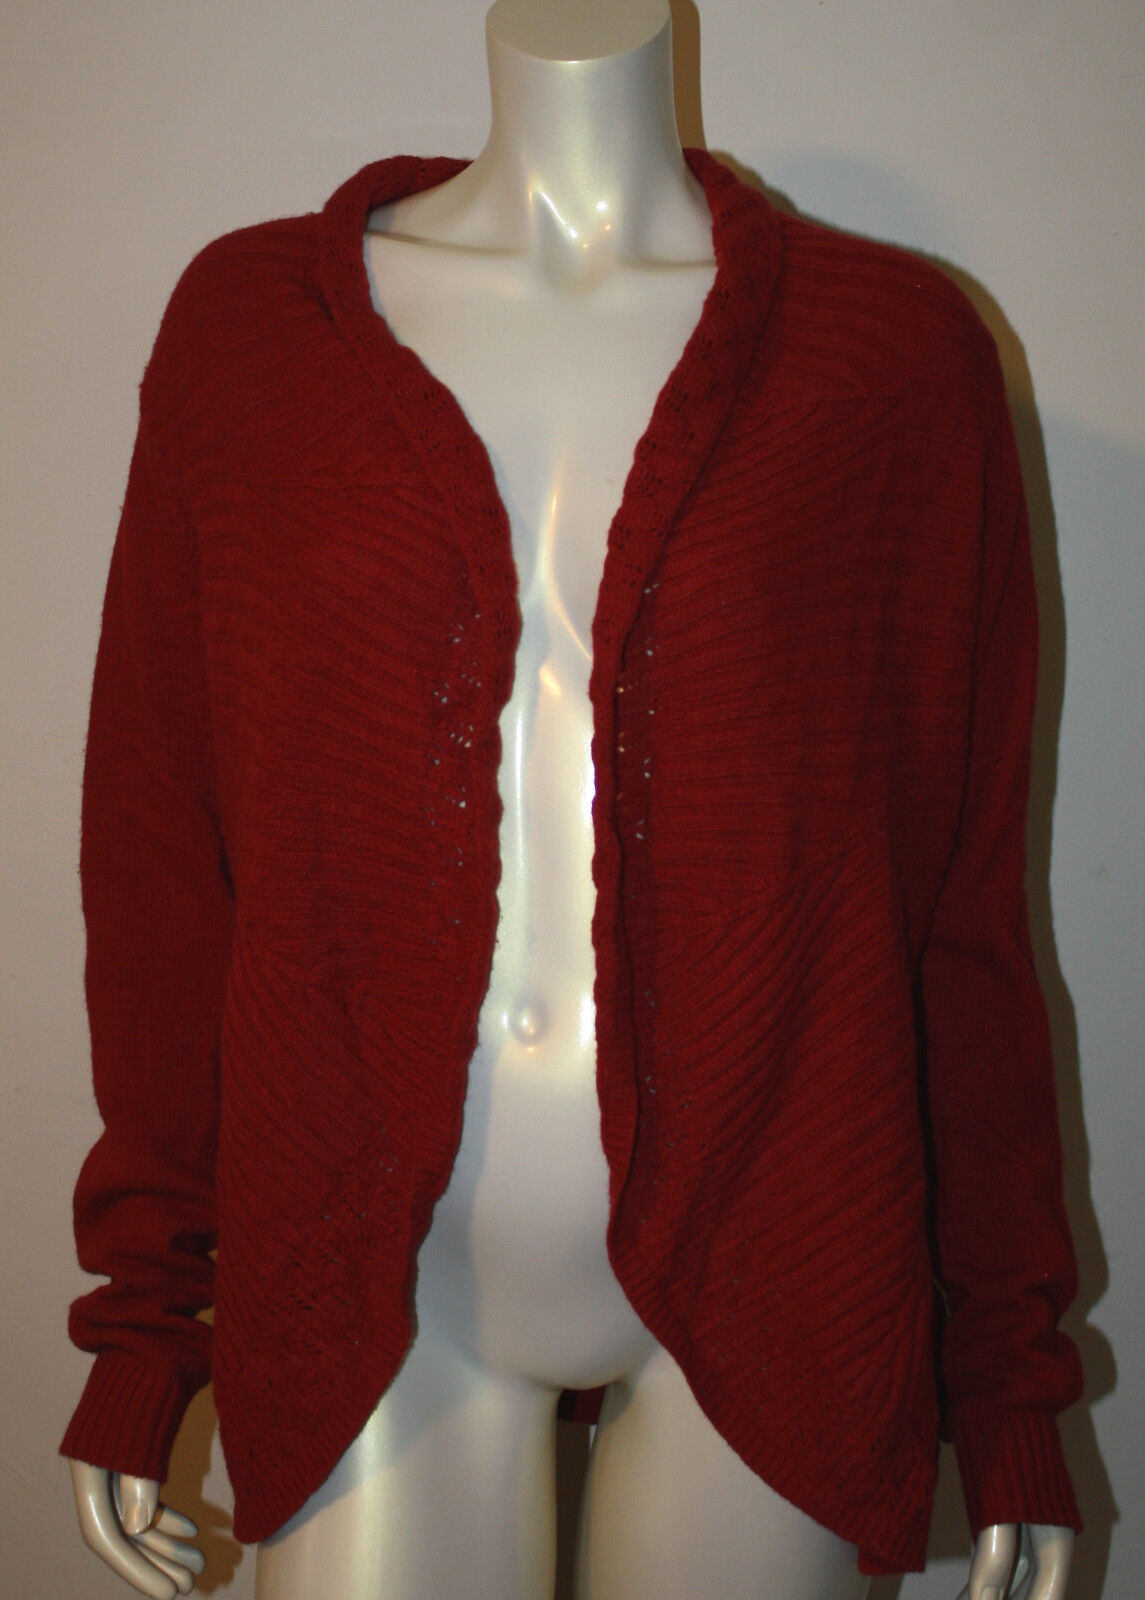 KNITTED & KNOTTED Red Cotton Wool LS Cardigan Sweater L NWT